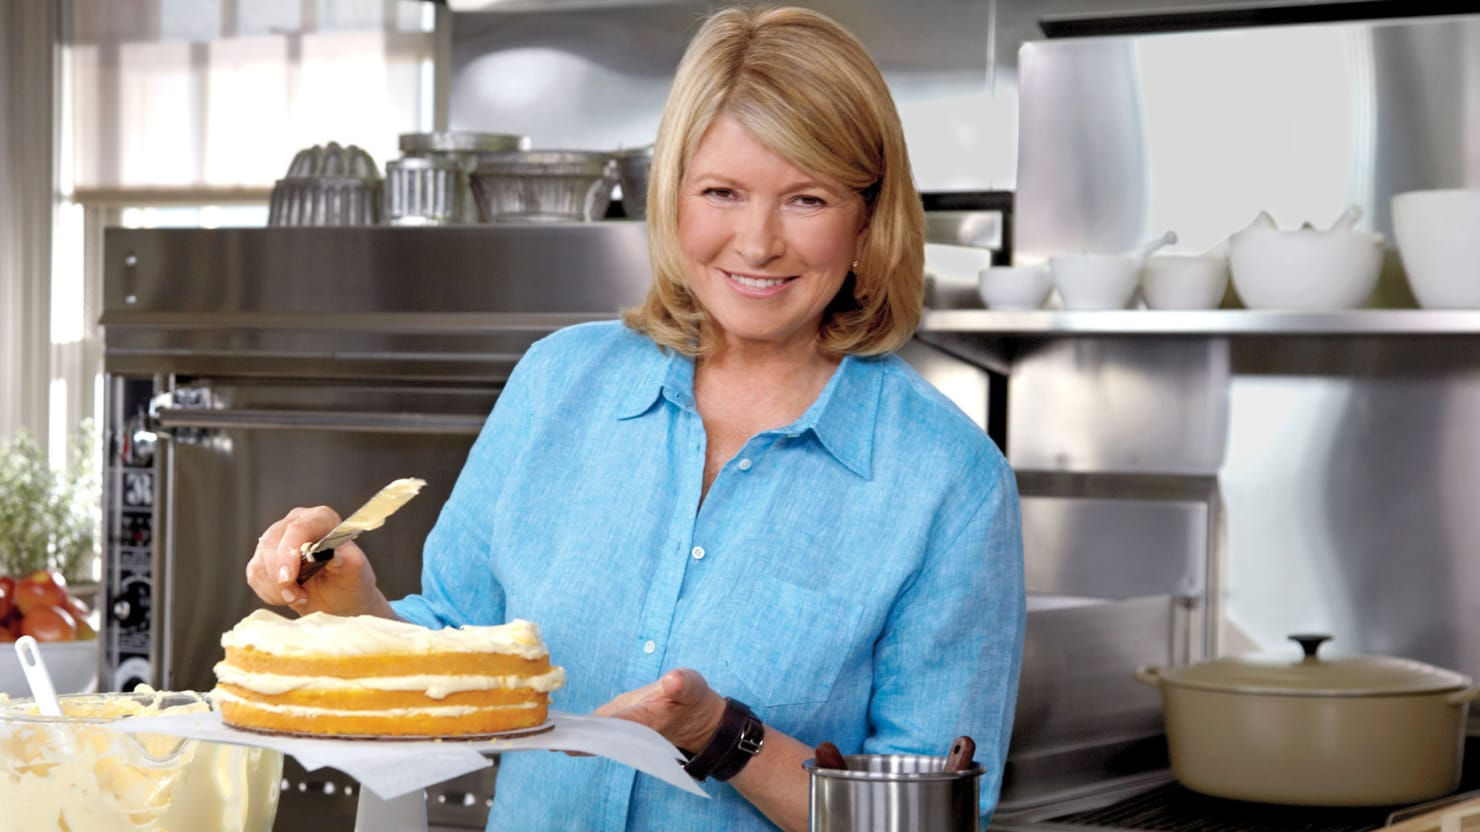 online-dating-martha-stewart-the-replacements-sex-pics